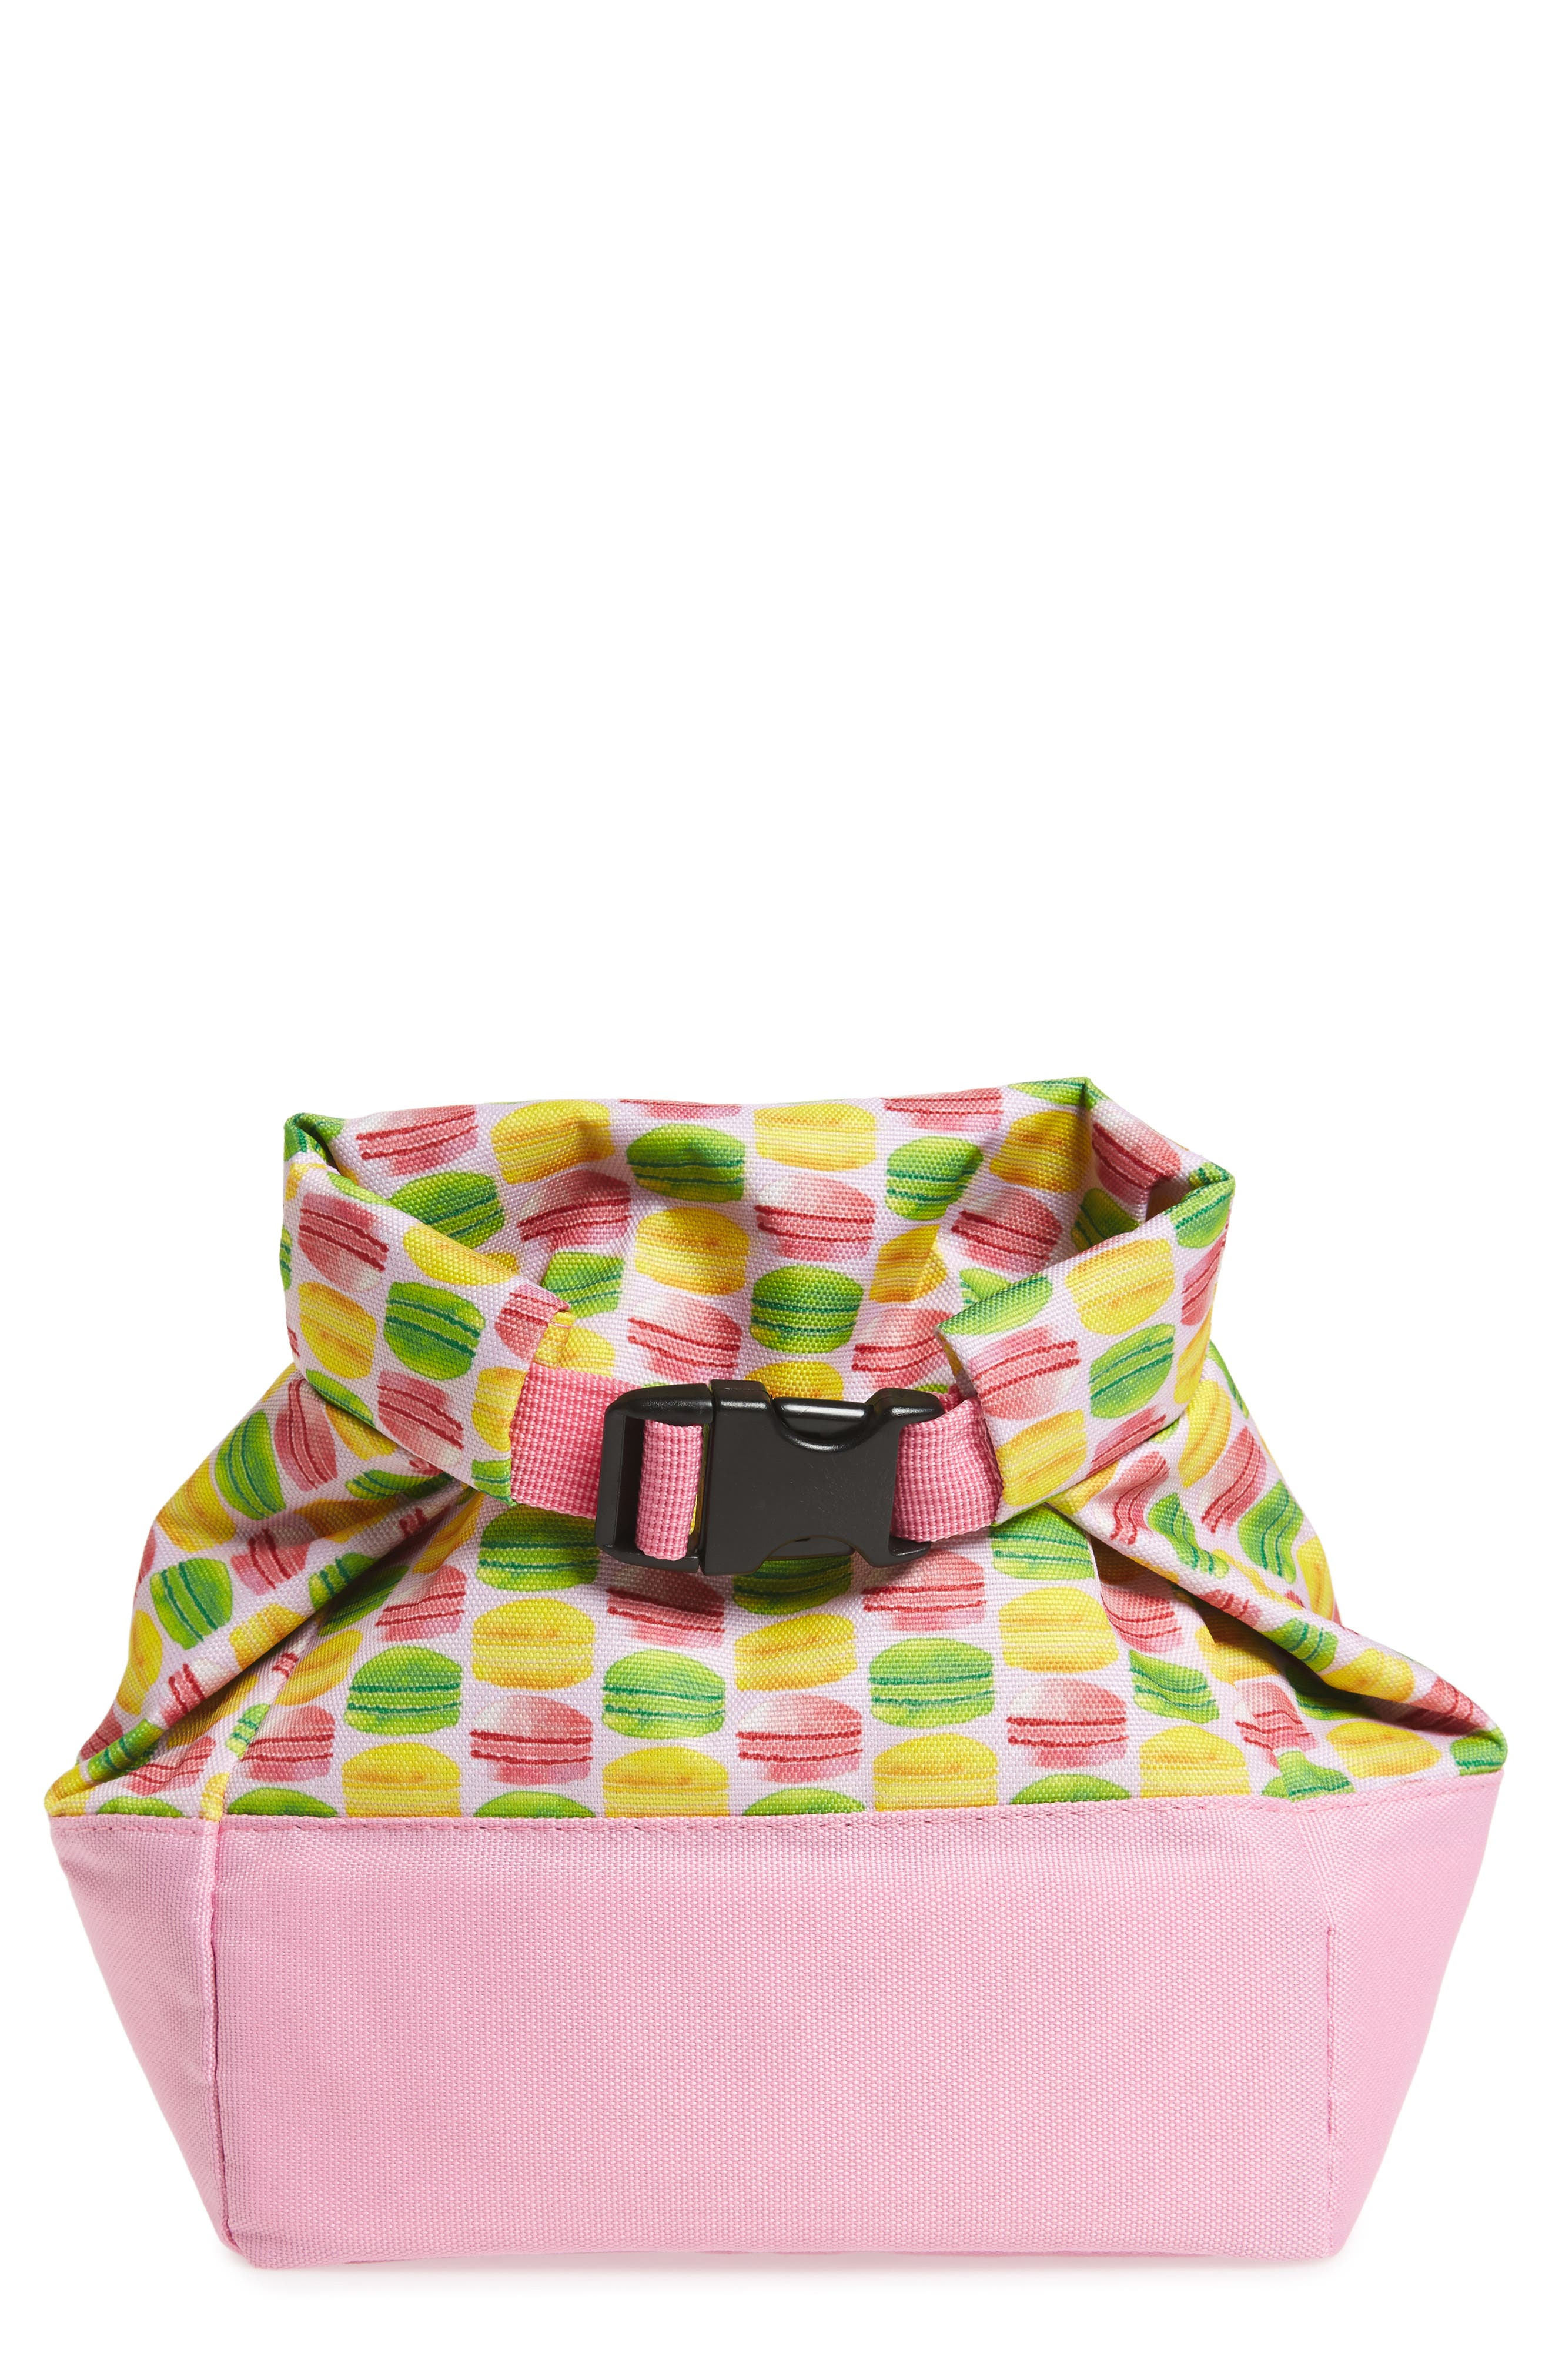 Macaron Print Roll Top Lunch Bag,                         Main,                         color, 680